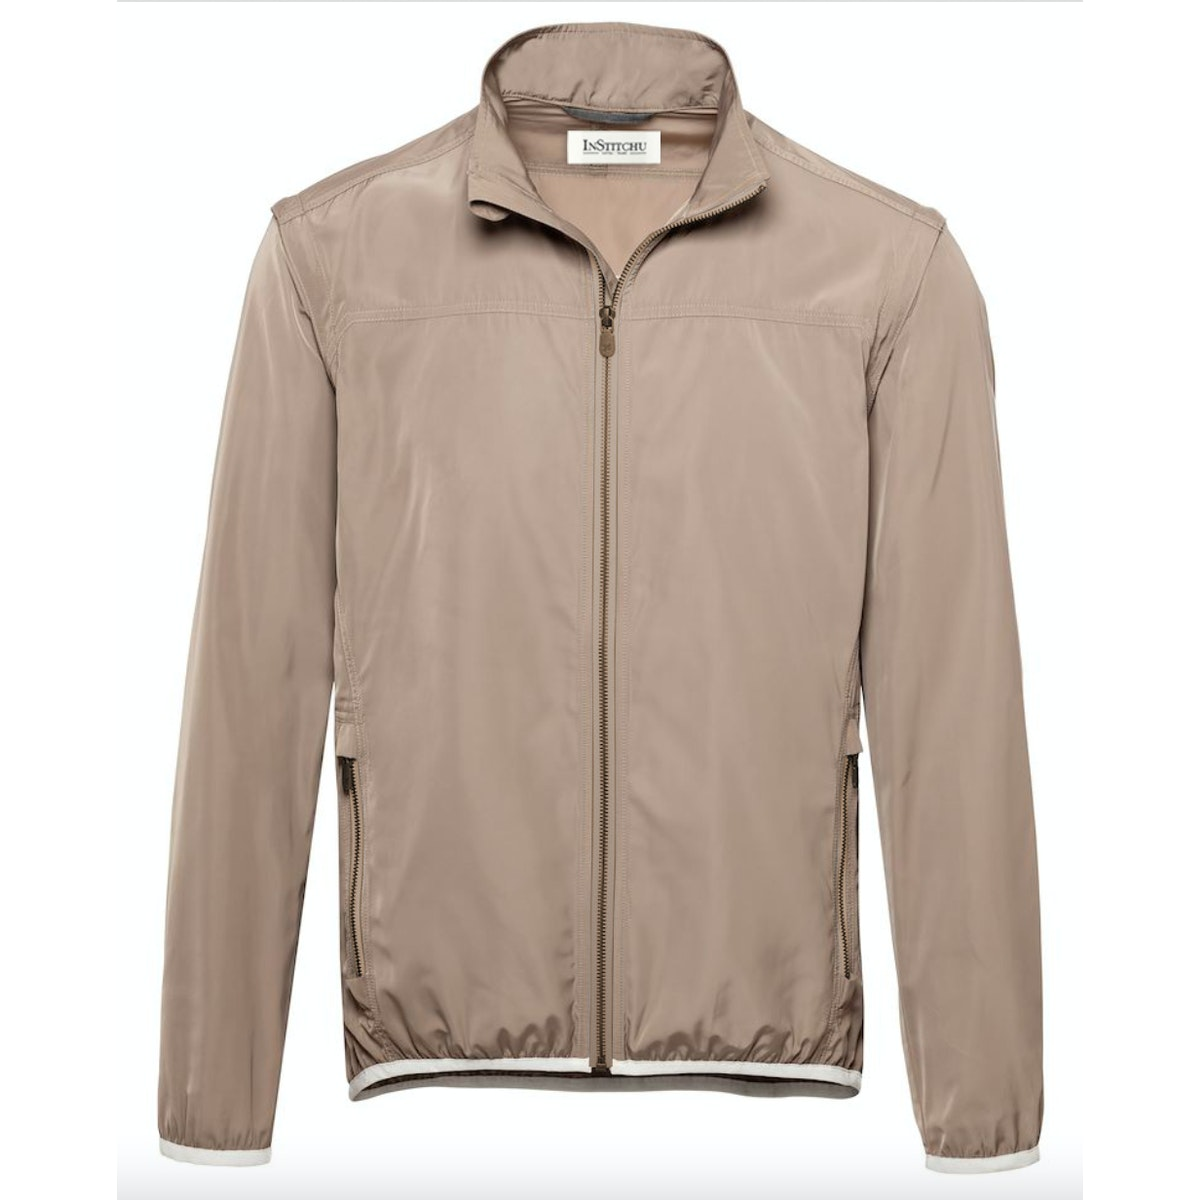 The Woods Taupe Golf Jacket